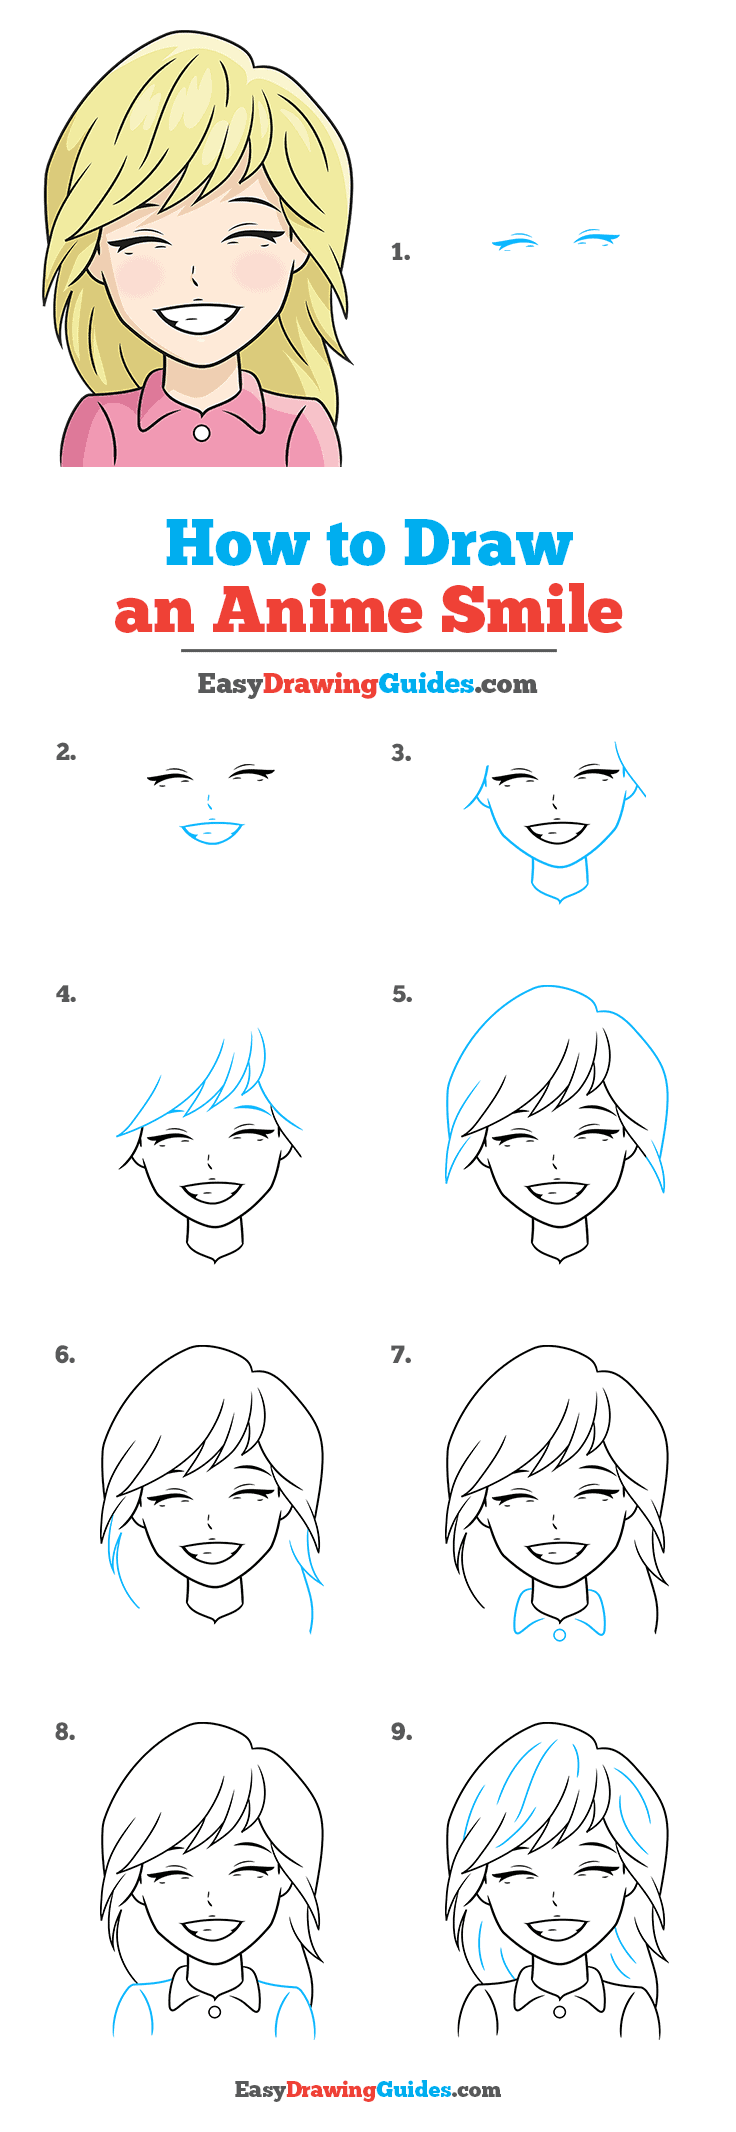 How to Draw Anime Smile